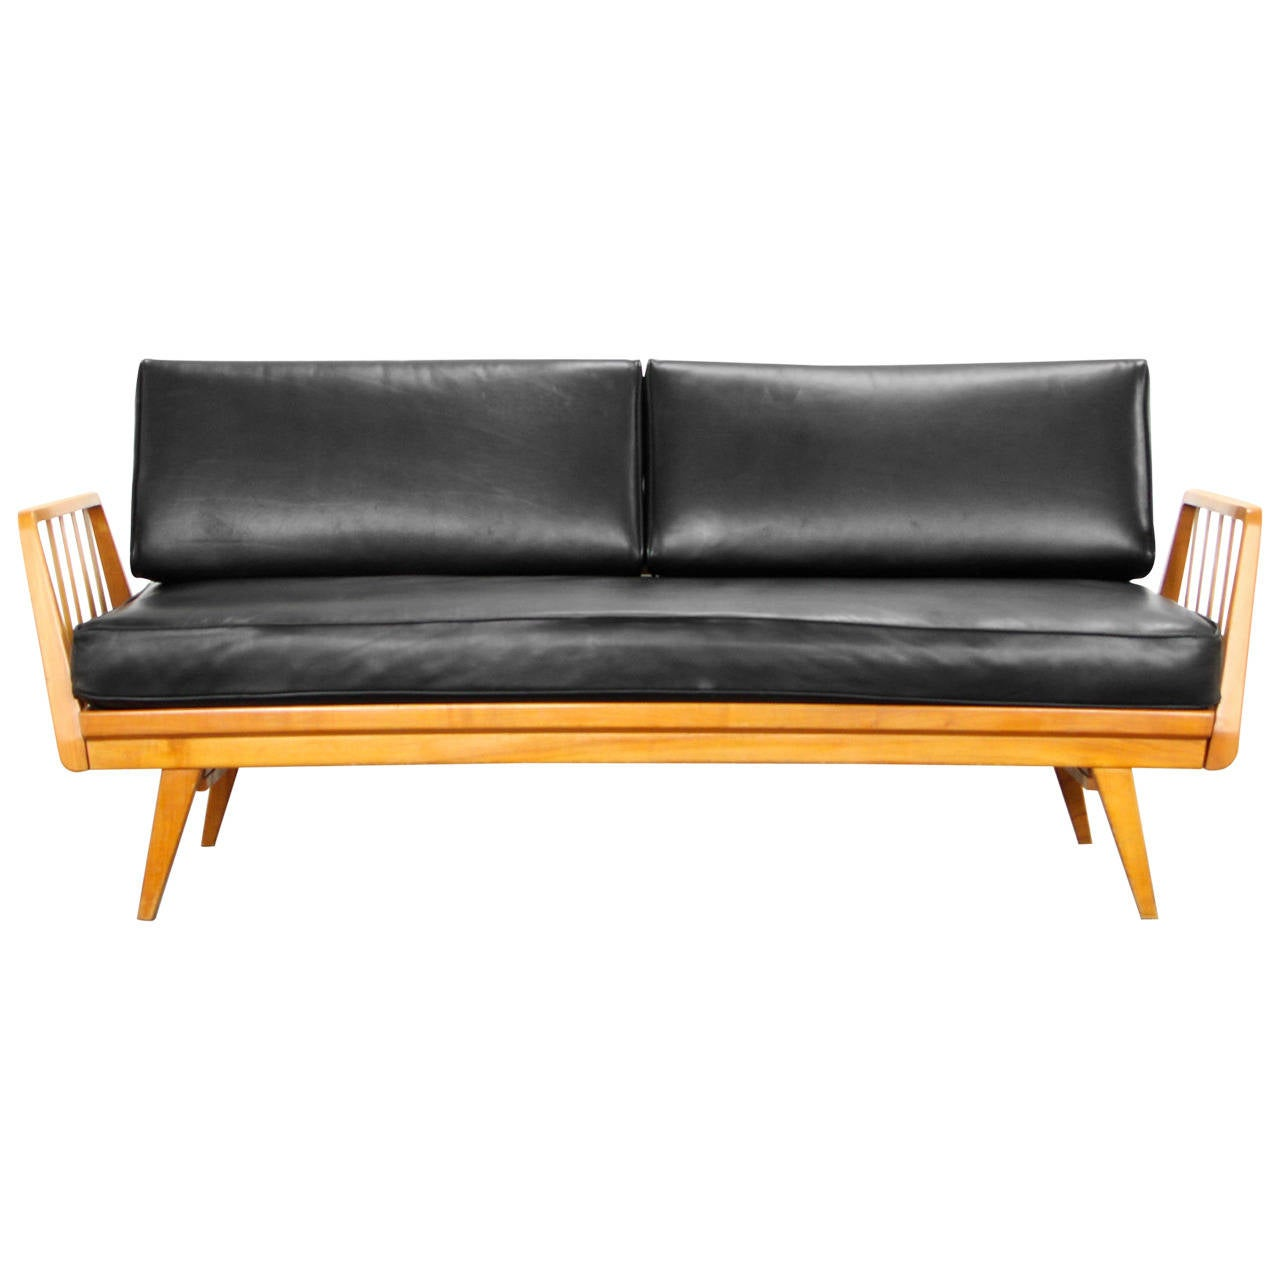 cherry and leather sofa by knoll antimott mid century modern design 1950s at 1stdibs. Black Bedroom Furniture Sets. Home Design Ideas